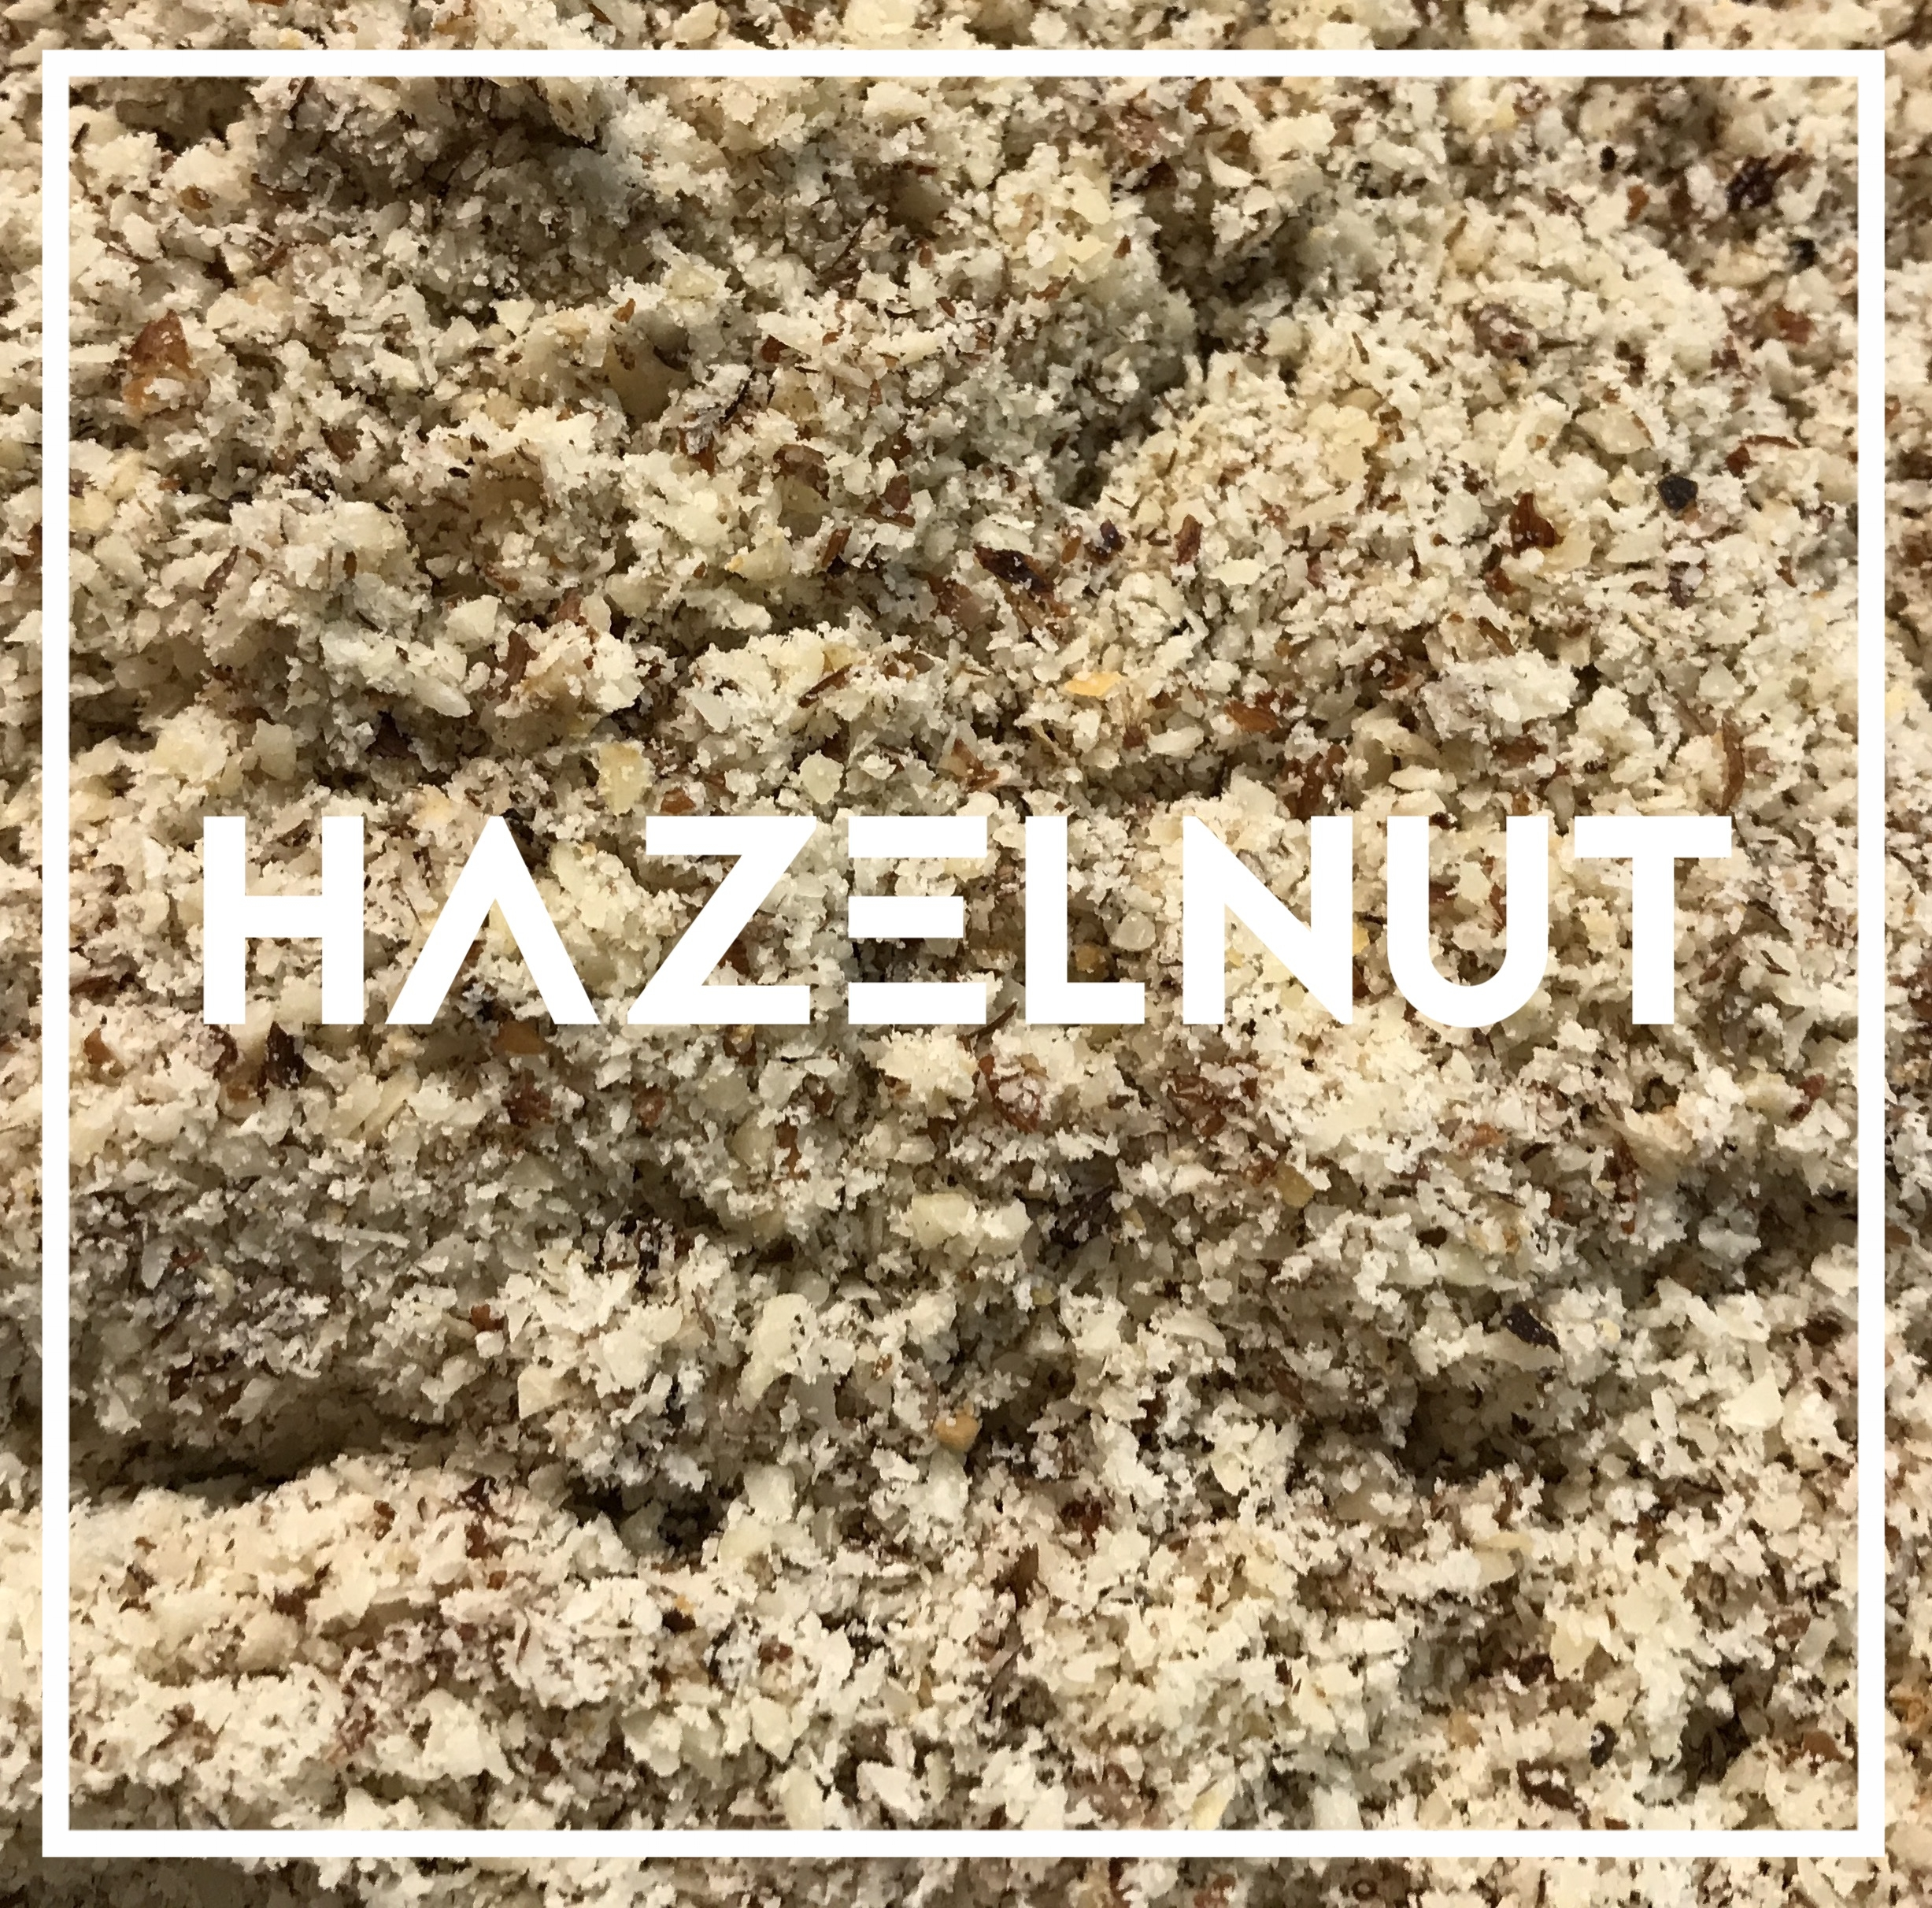 Hazelnuts are not widely grown in the midwest. Our hazelnut meal is made from hazelnuts grown on orchards in Oregon's Willamette Valley, where 99% of the United States' hazelnuts are grown. They are milled by  Northwest Hazelnut .   Used in: Windy Point   Hazelnuts are often added to cookies and chocolates for their crumbly texture and rich flavor. They are the perfect addition to a tender high-protein breakfast cake that won't quit before lunch.